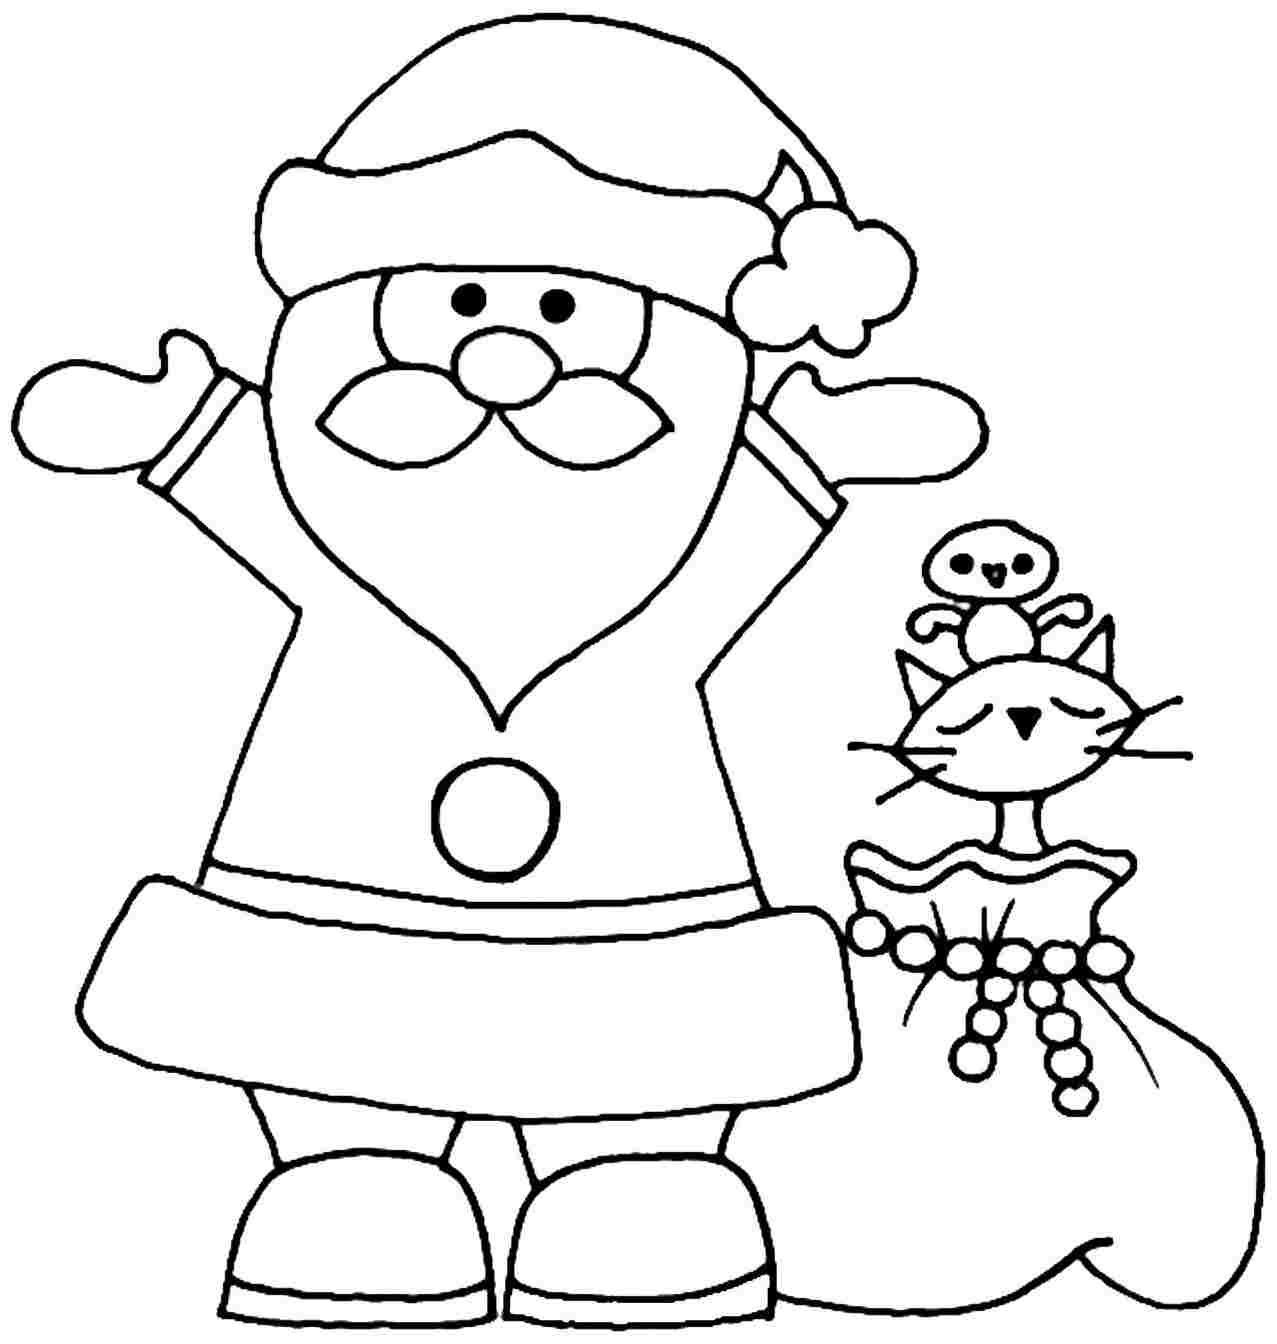 Santa Claus Coloring Pages For Preschoolers With Pin By Shreya Thakur On Free Pinterest